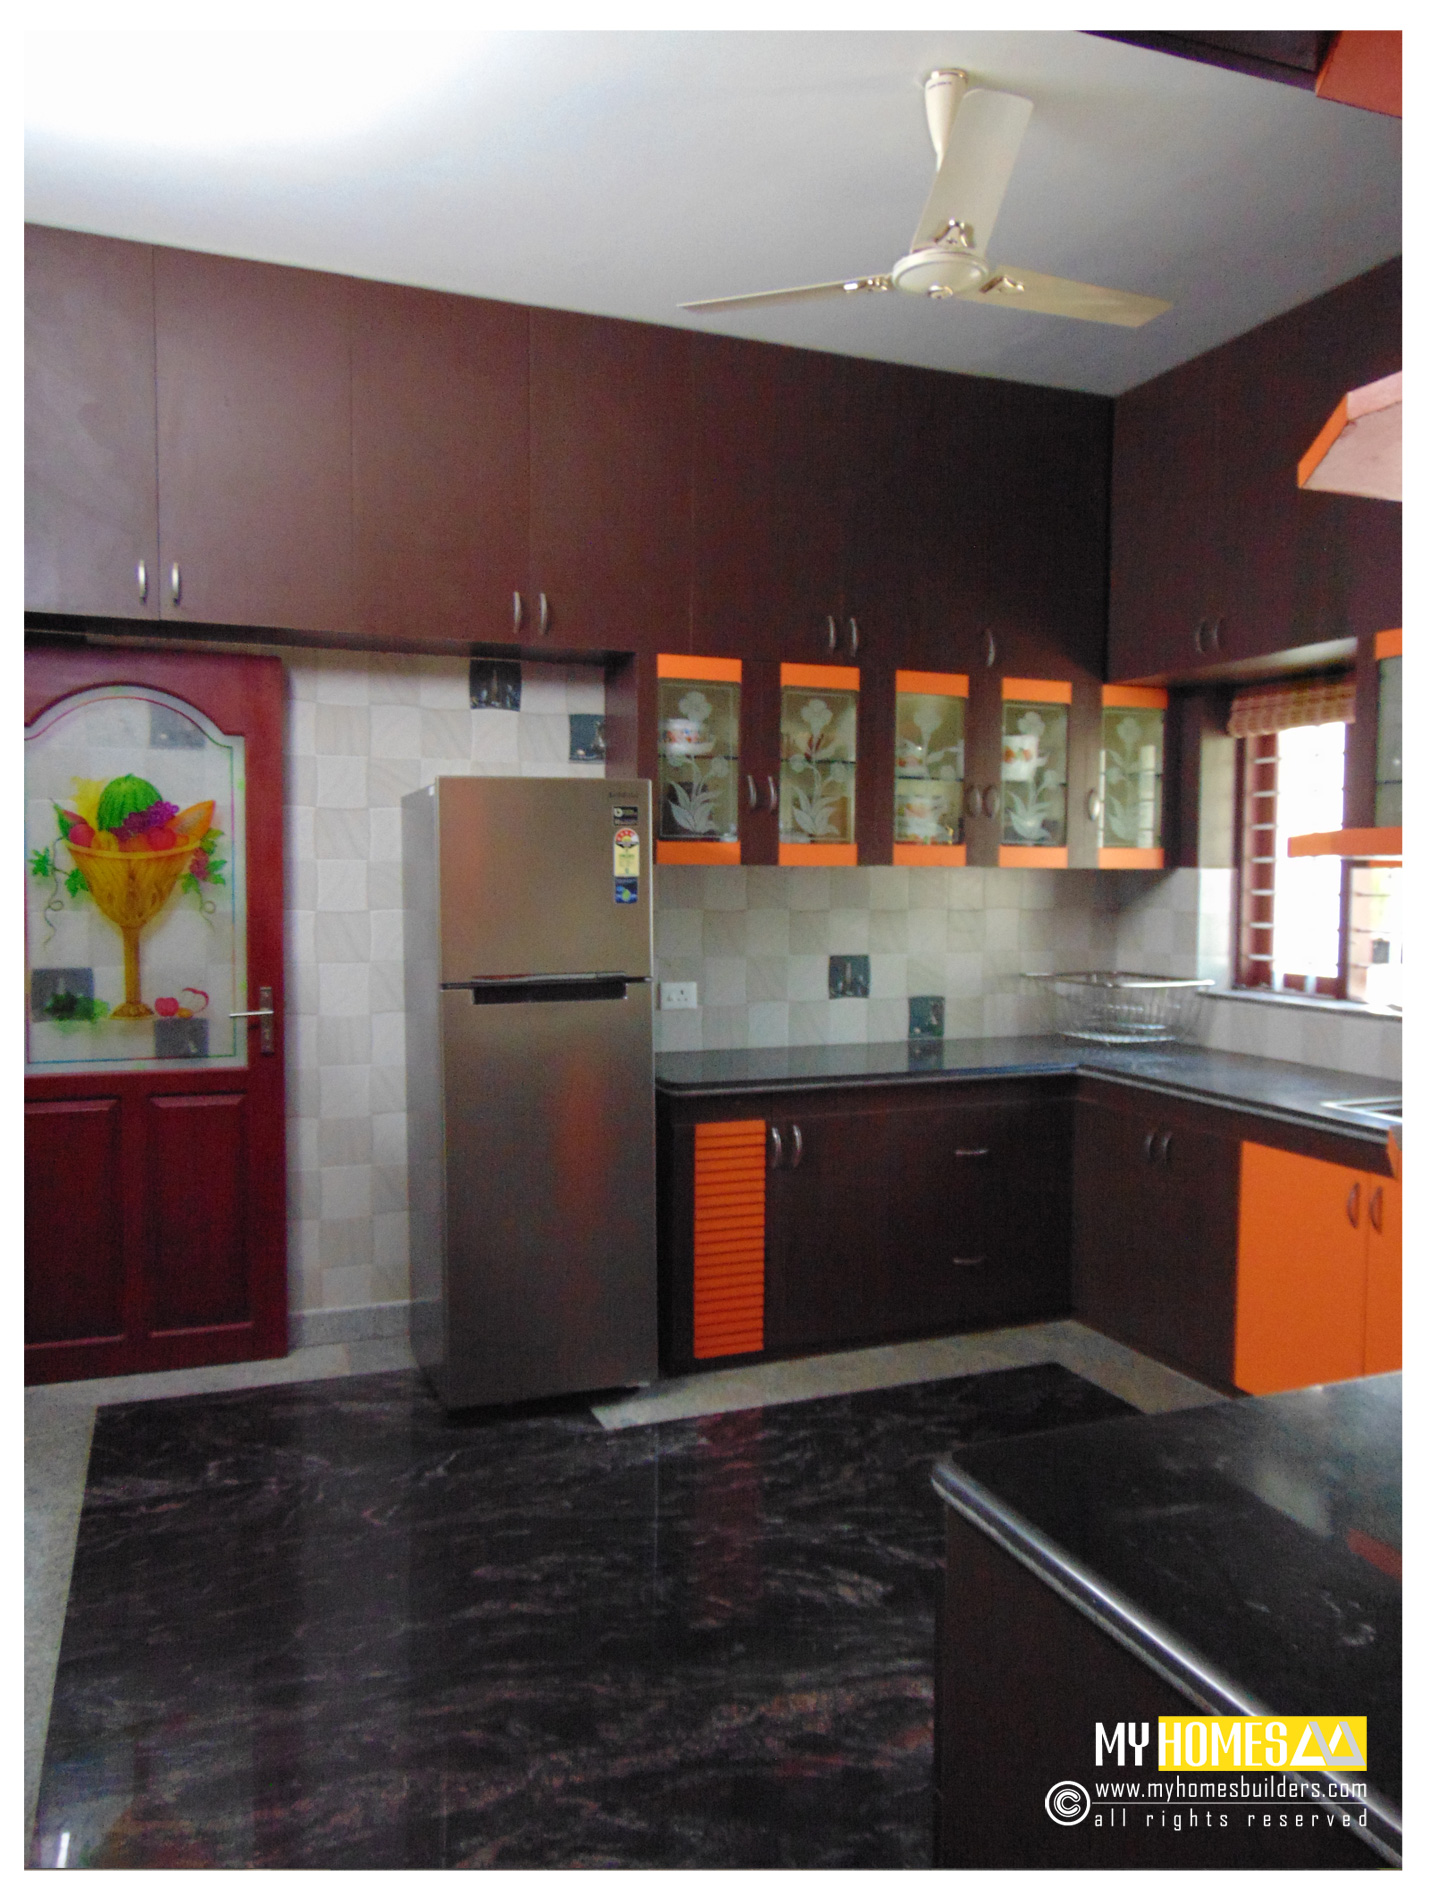 Kerala kitchen designs idea in modular style for house in for New house kitchen ideas